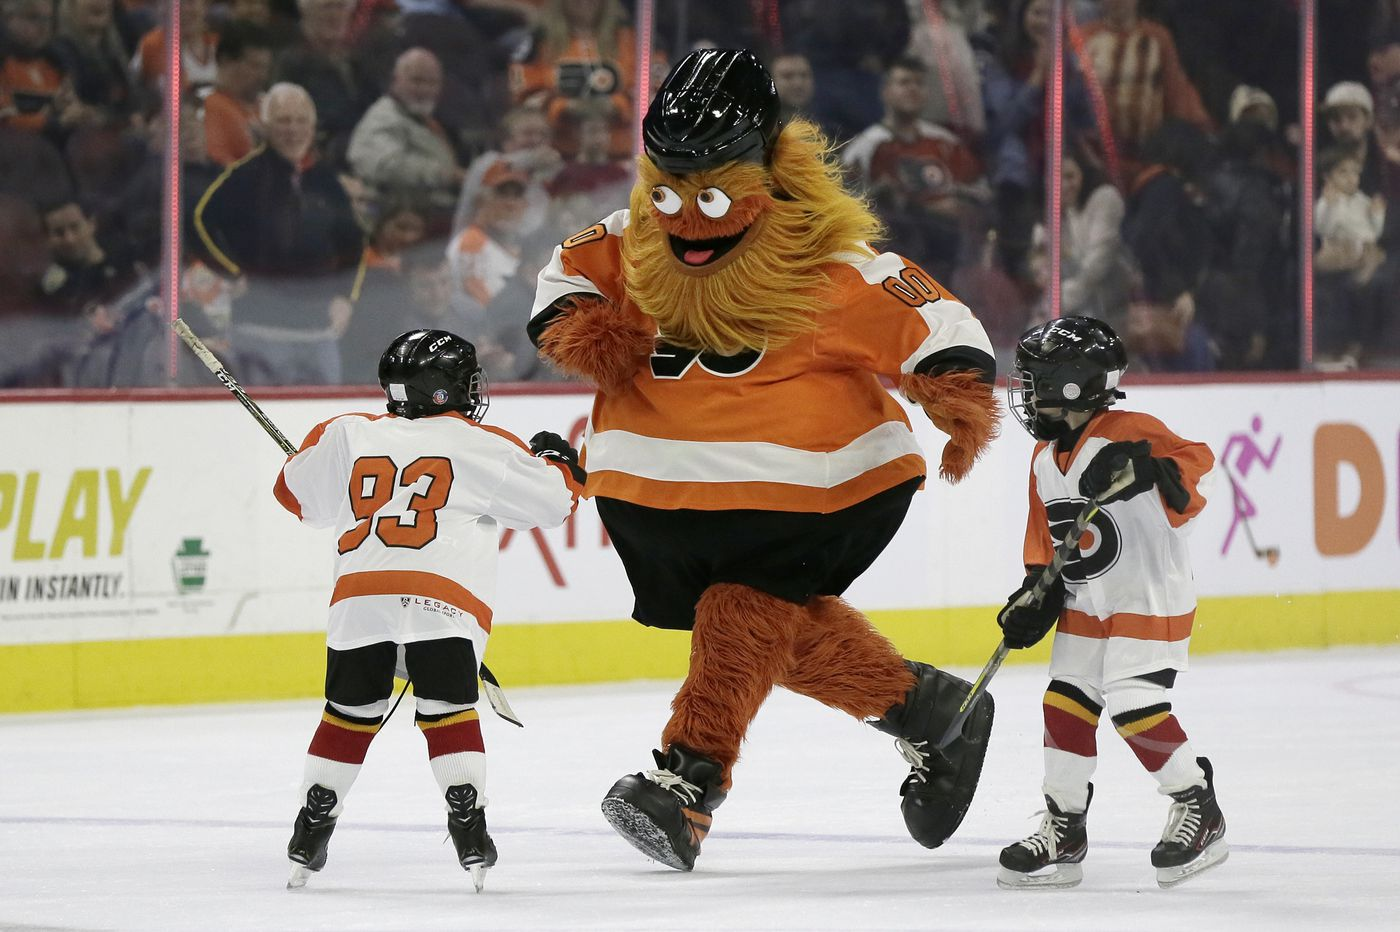 A Gritty-themed 'anti-runners' 5k is happening